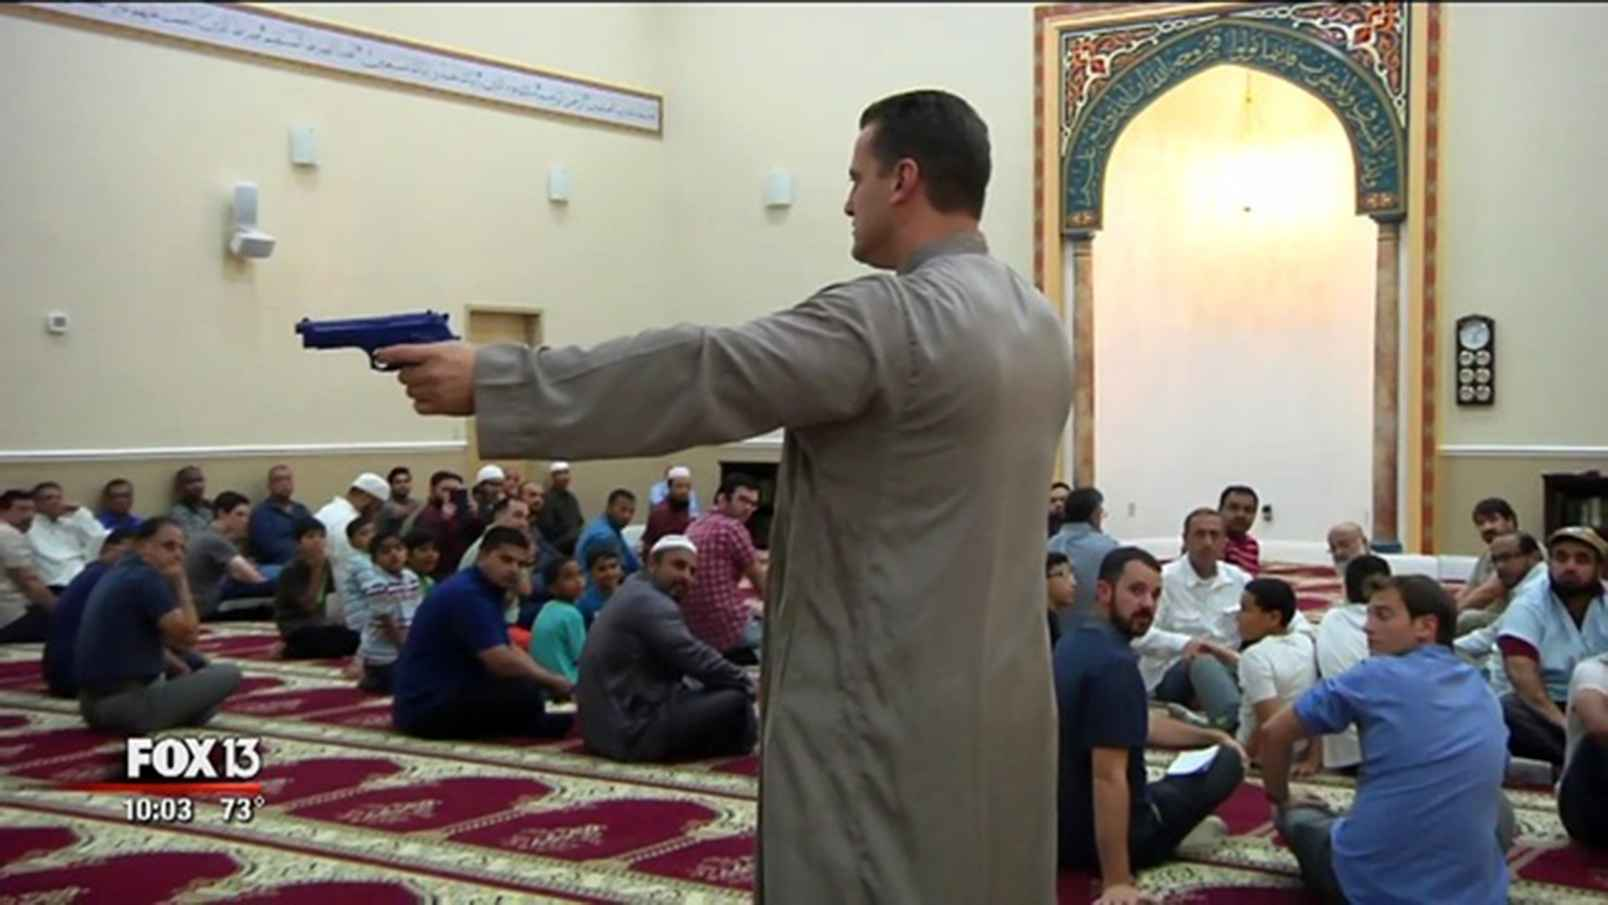 CAIRS DEPUTY HAMAS TEACHES RADICAL MOSQUE TO USE GUNS